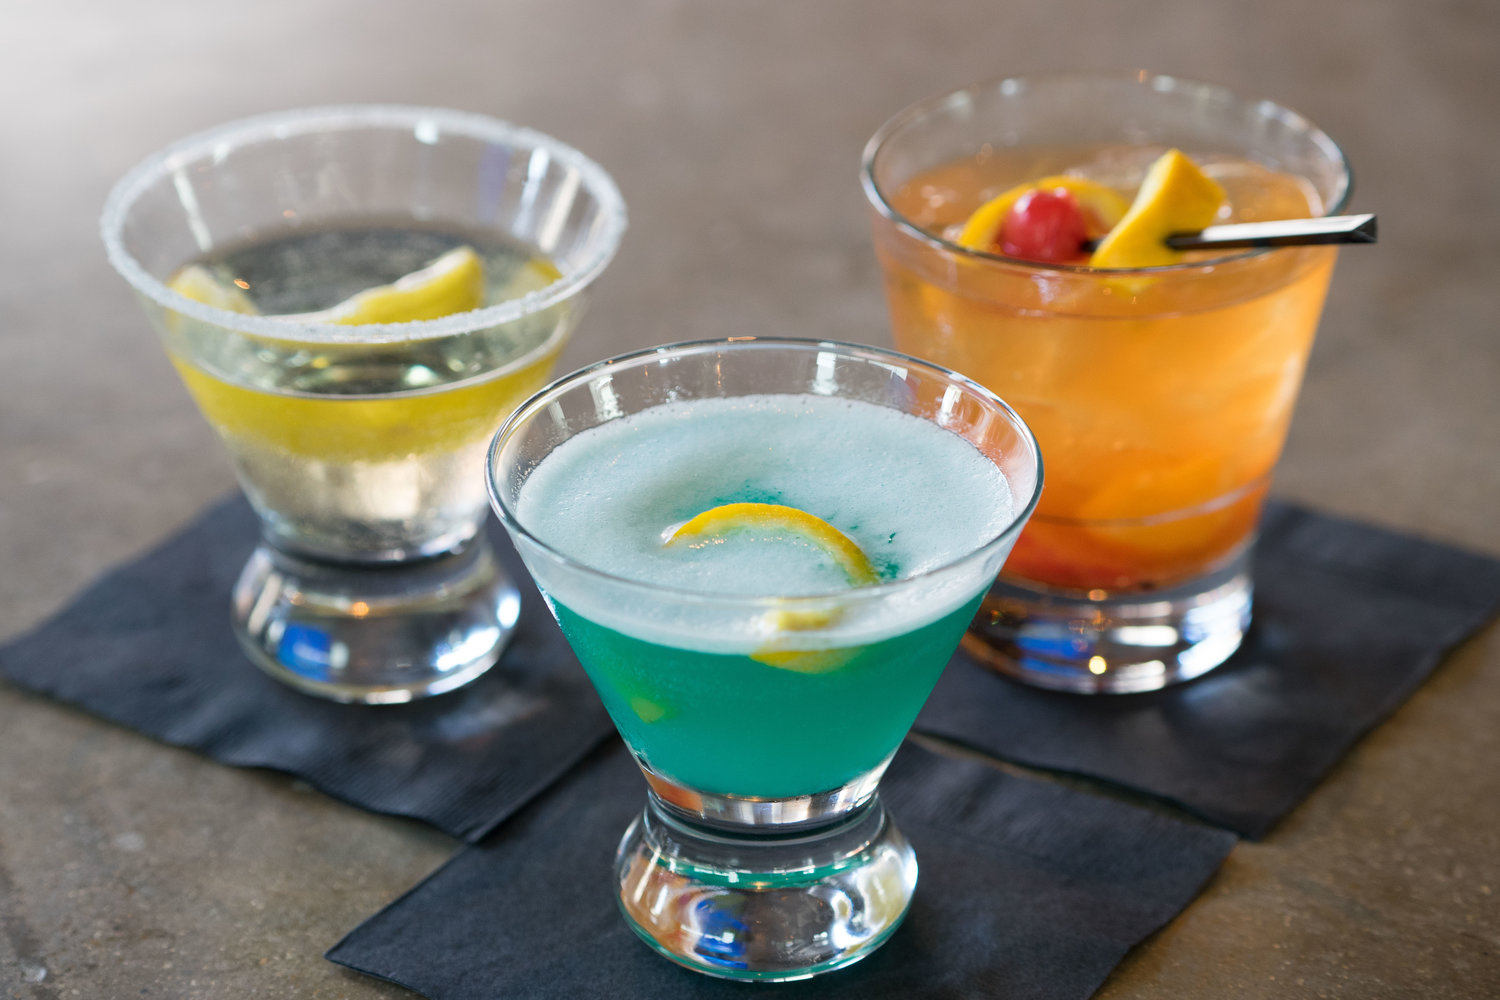 Try one of our amazing Draft Cocktails!